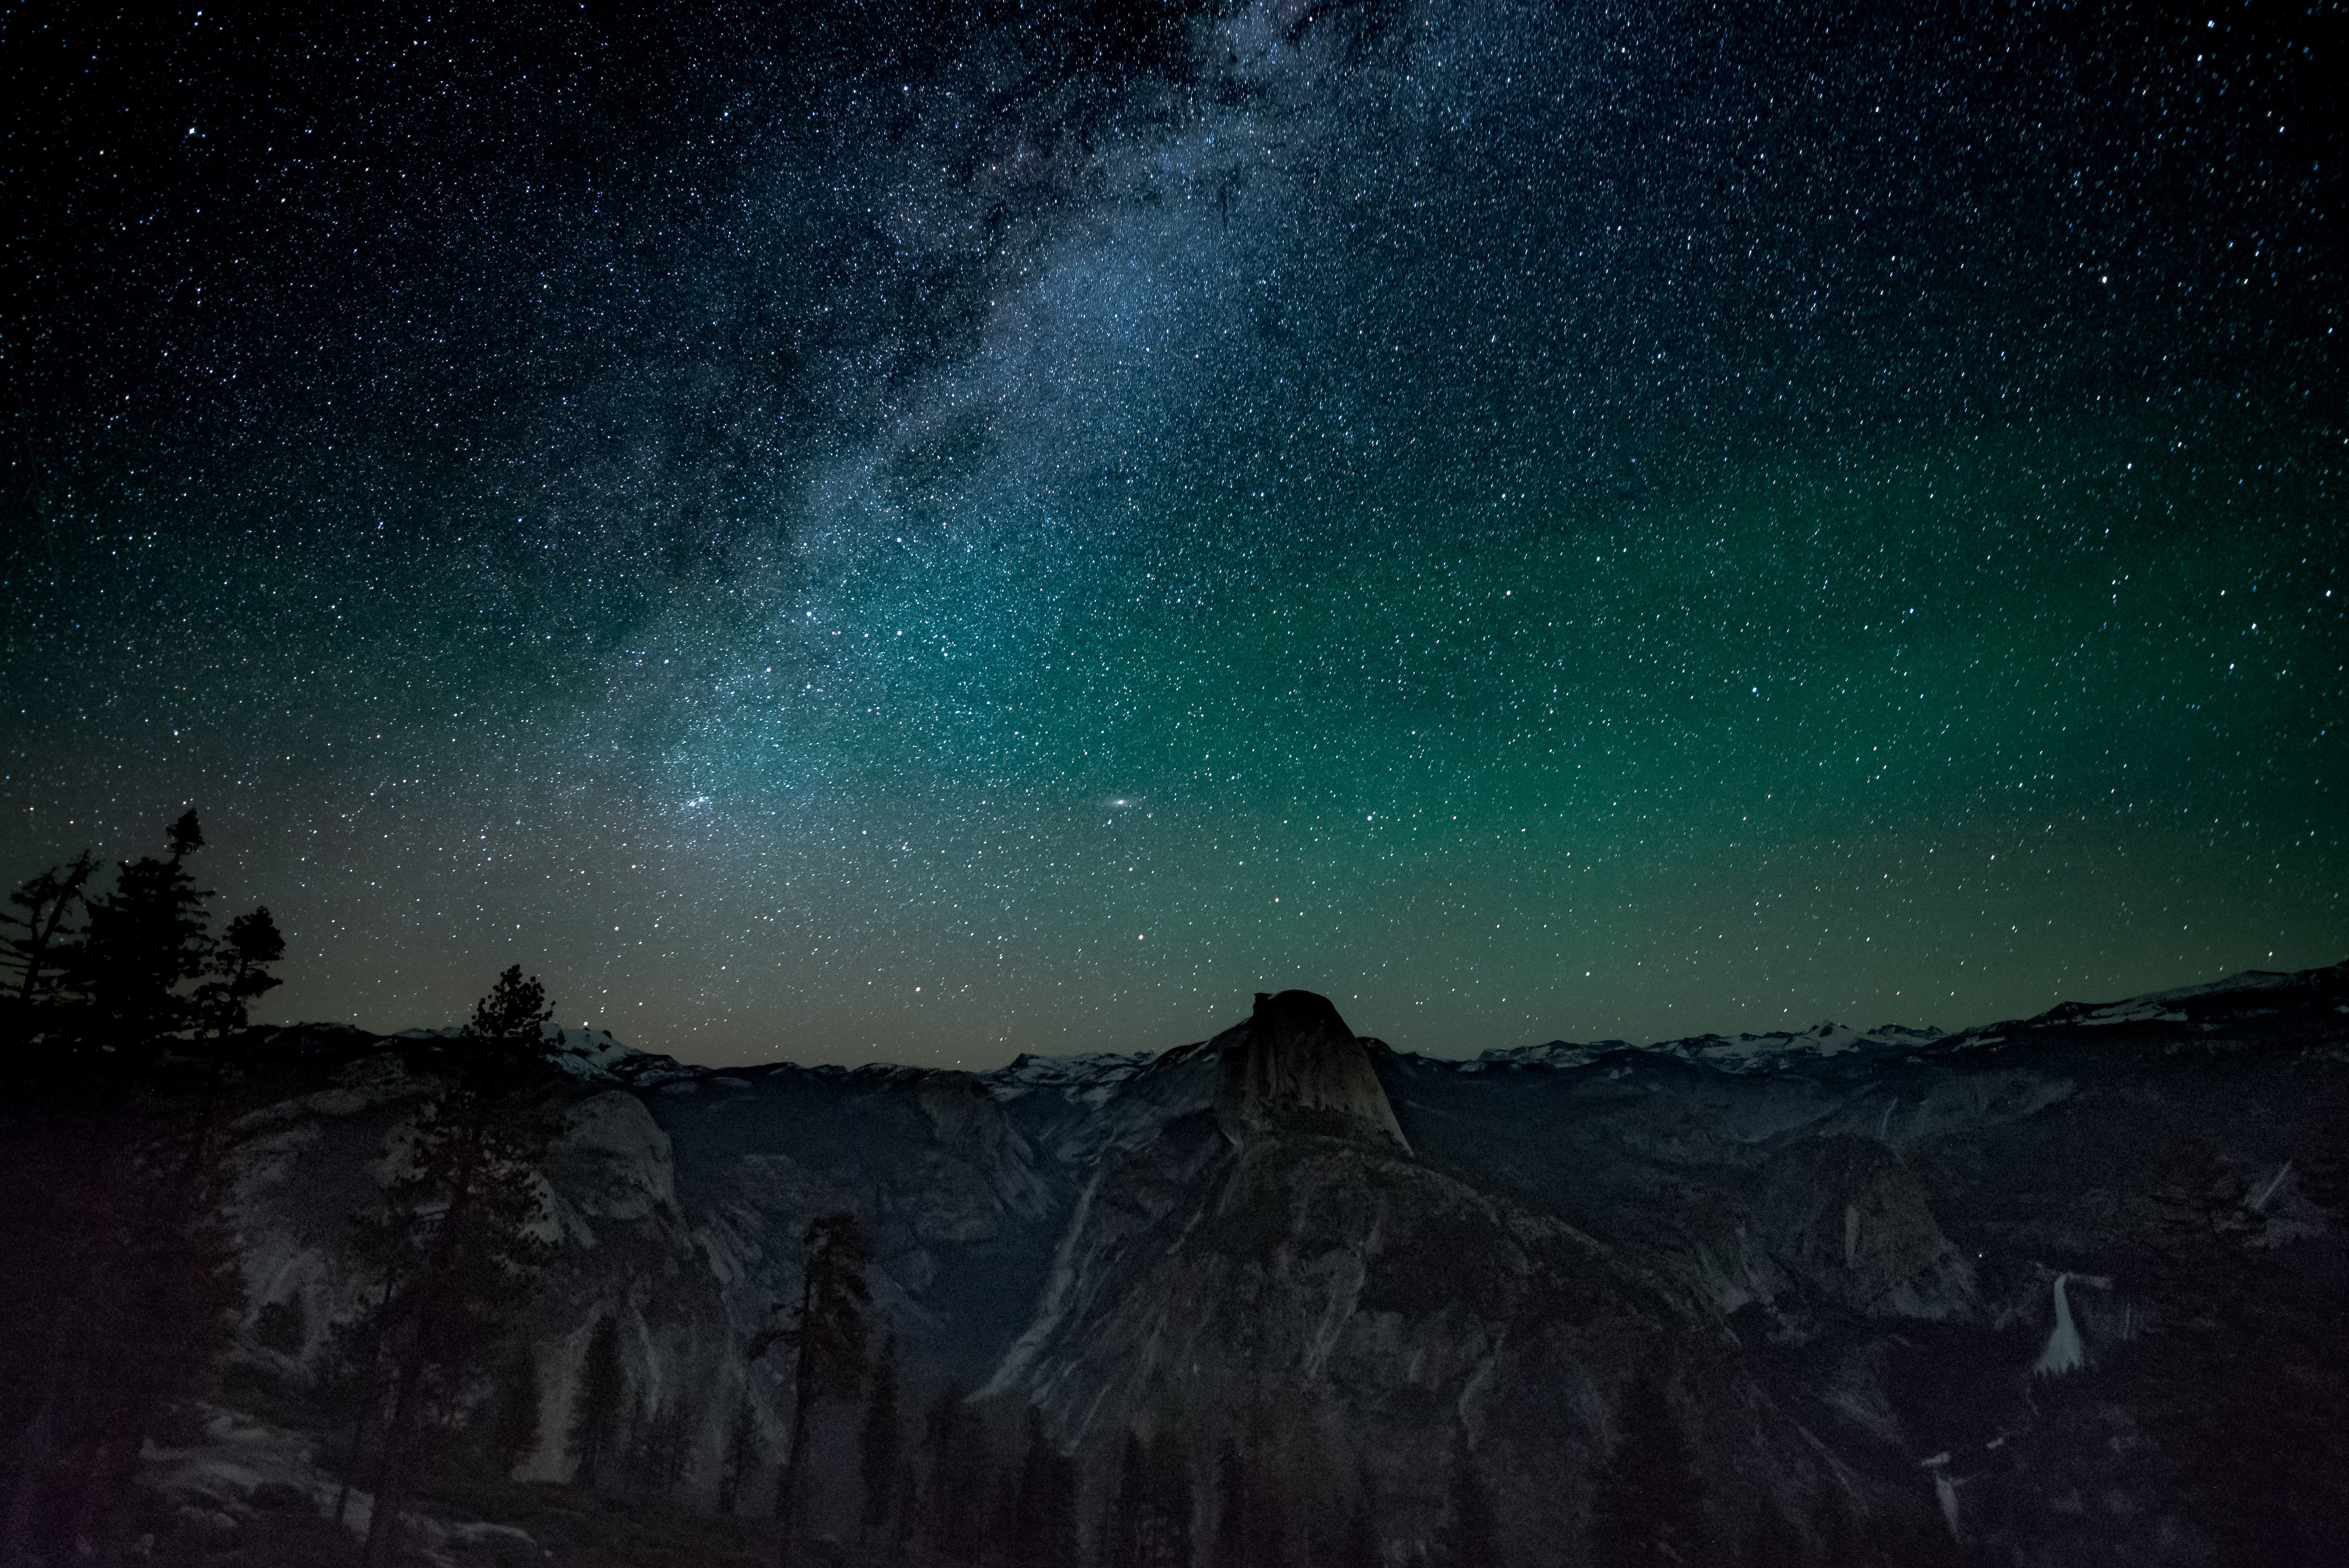 milky way on top of mountains